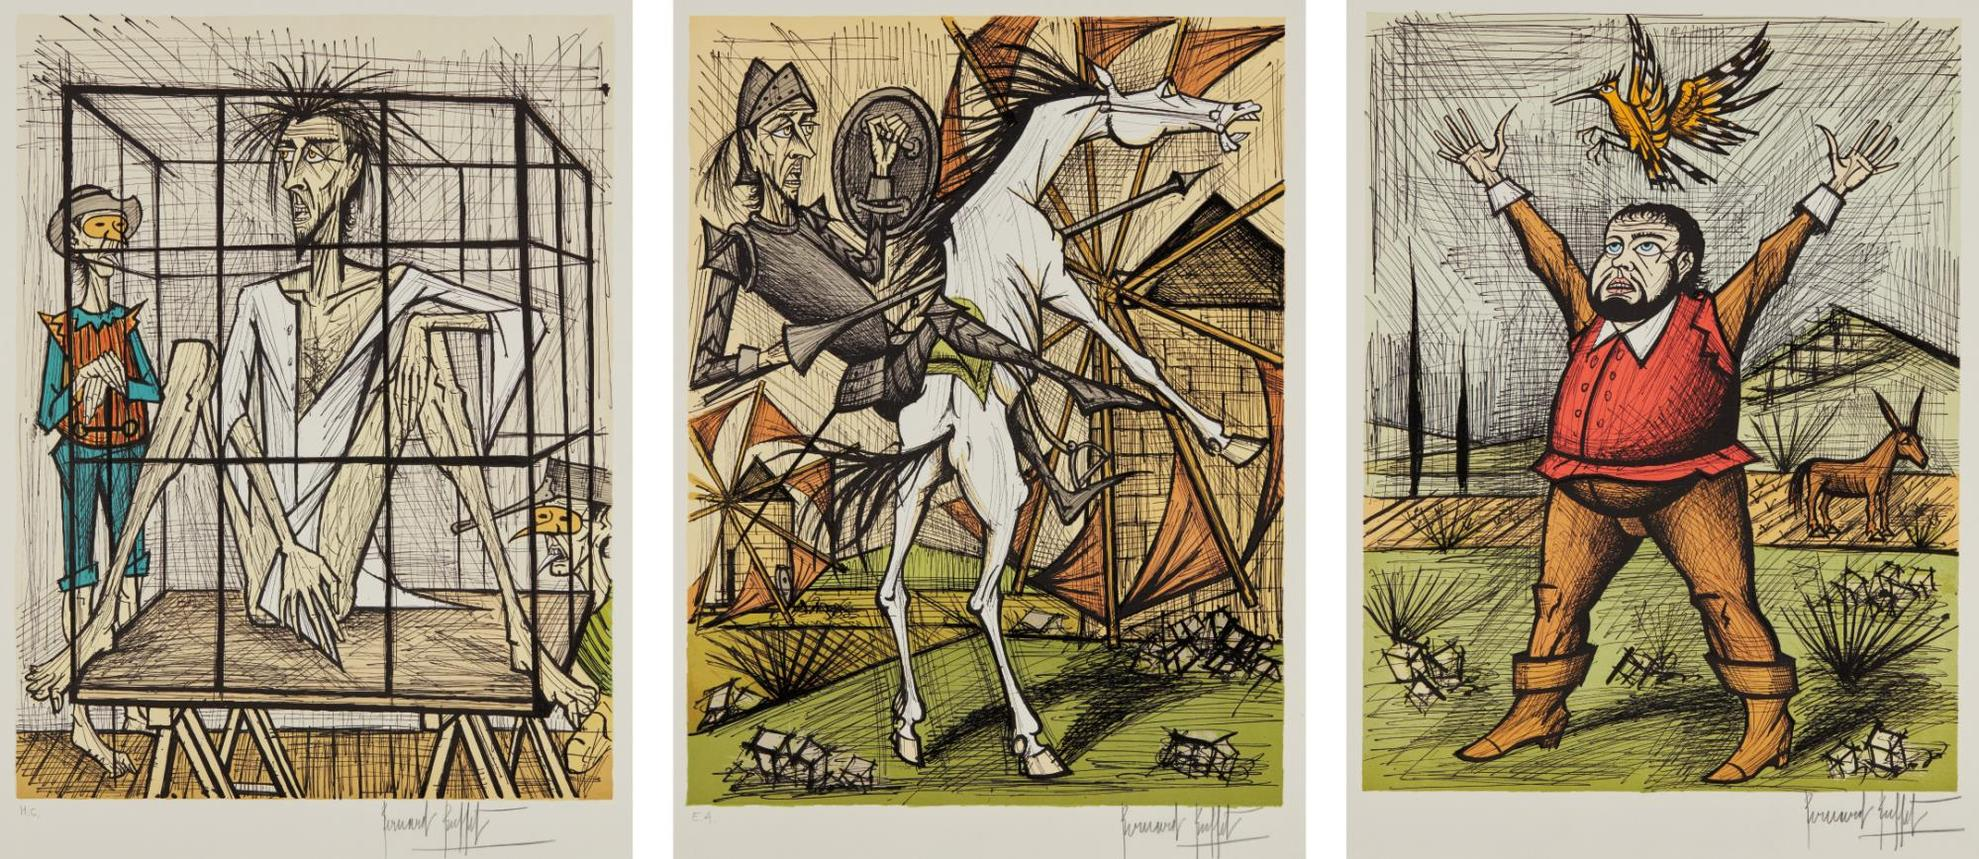 Bernard Buffet-Don Quixote Et Les Moulins (Don Quixote And The Mills); Sancho Panza Et La Huppe (Sancho Panza And The Hoopoe); And Don Quixote En Cage (Don Quixote In A Cage), From Don Quixote-1989